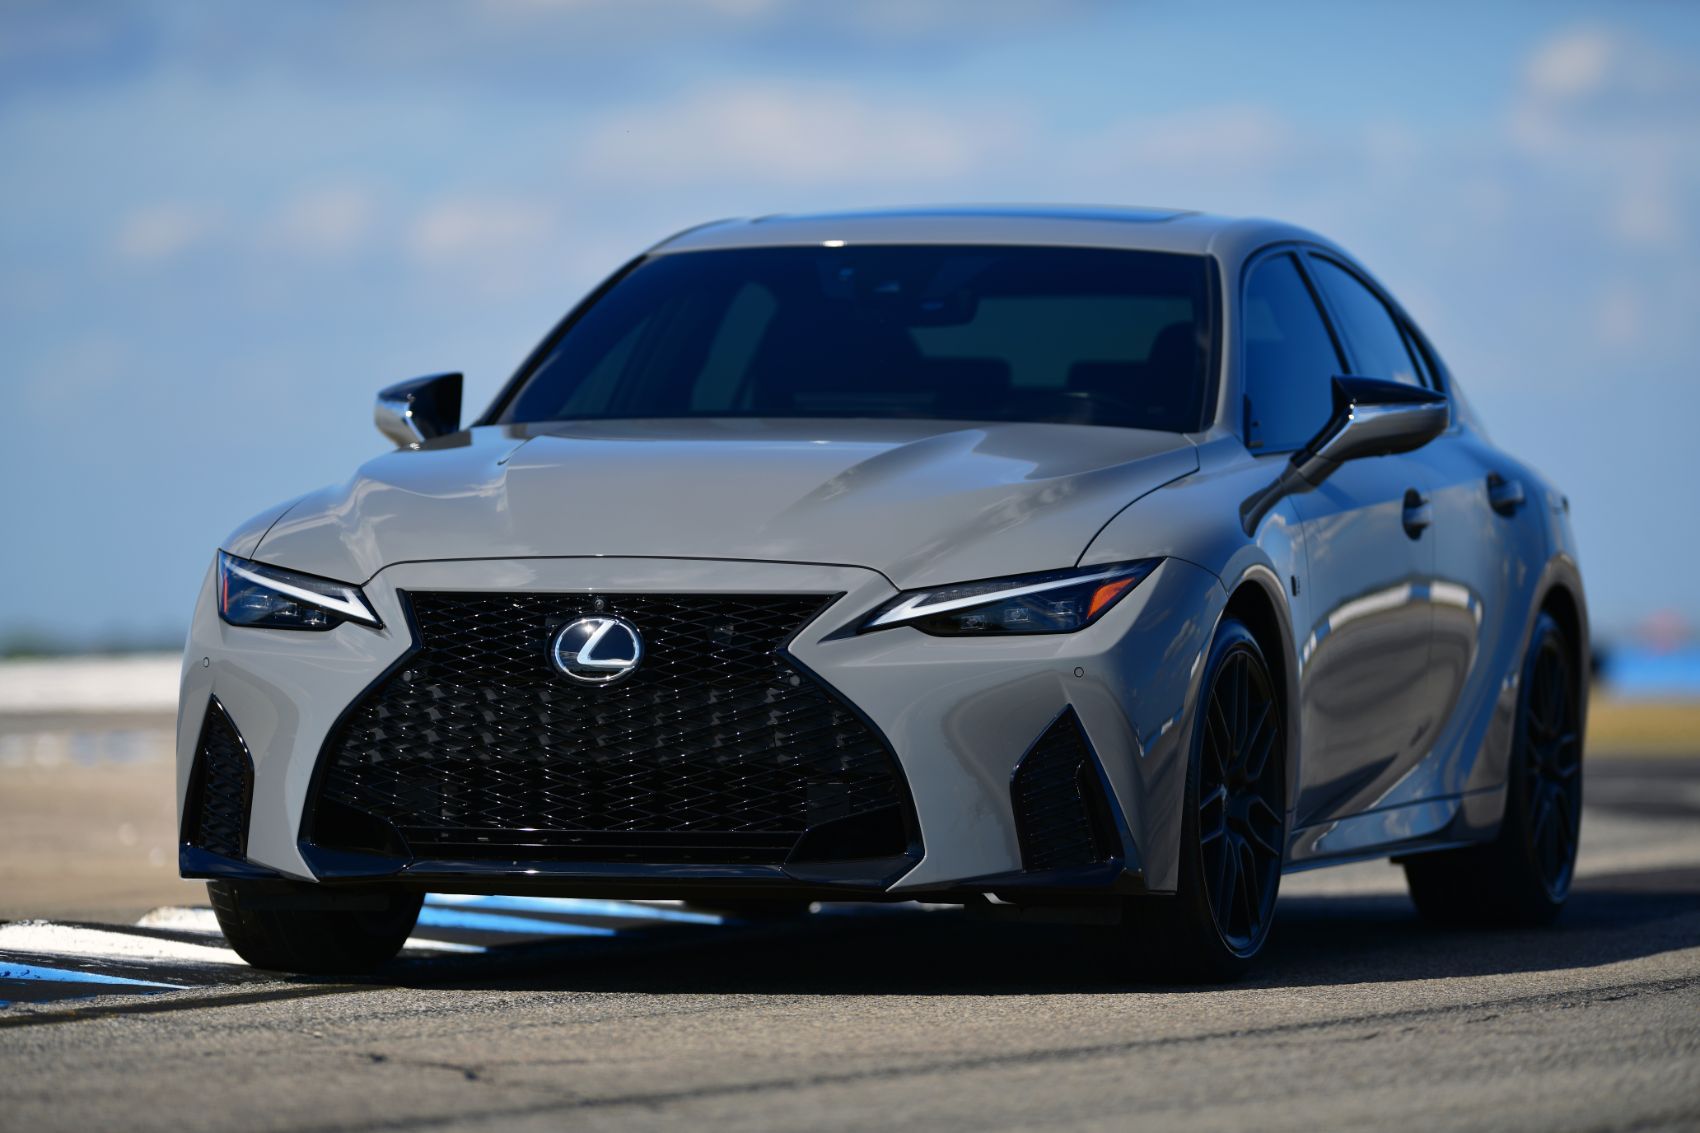 Enjoy This Photo Gallery of The Lexus IS 500 F SPORT Performance Launch Edition